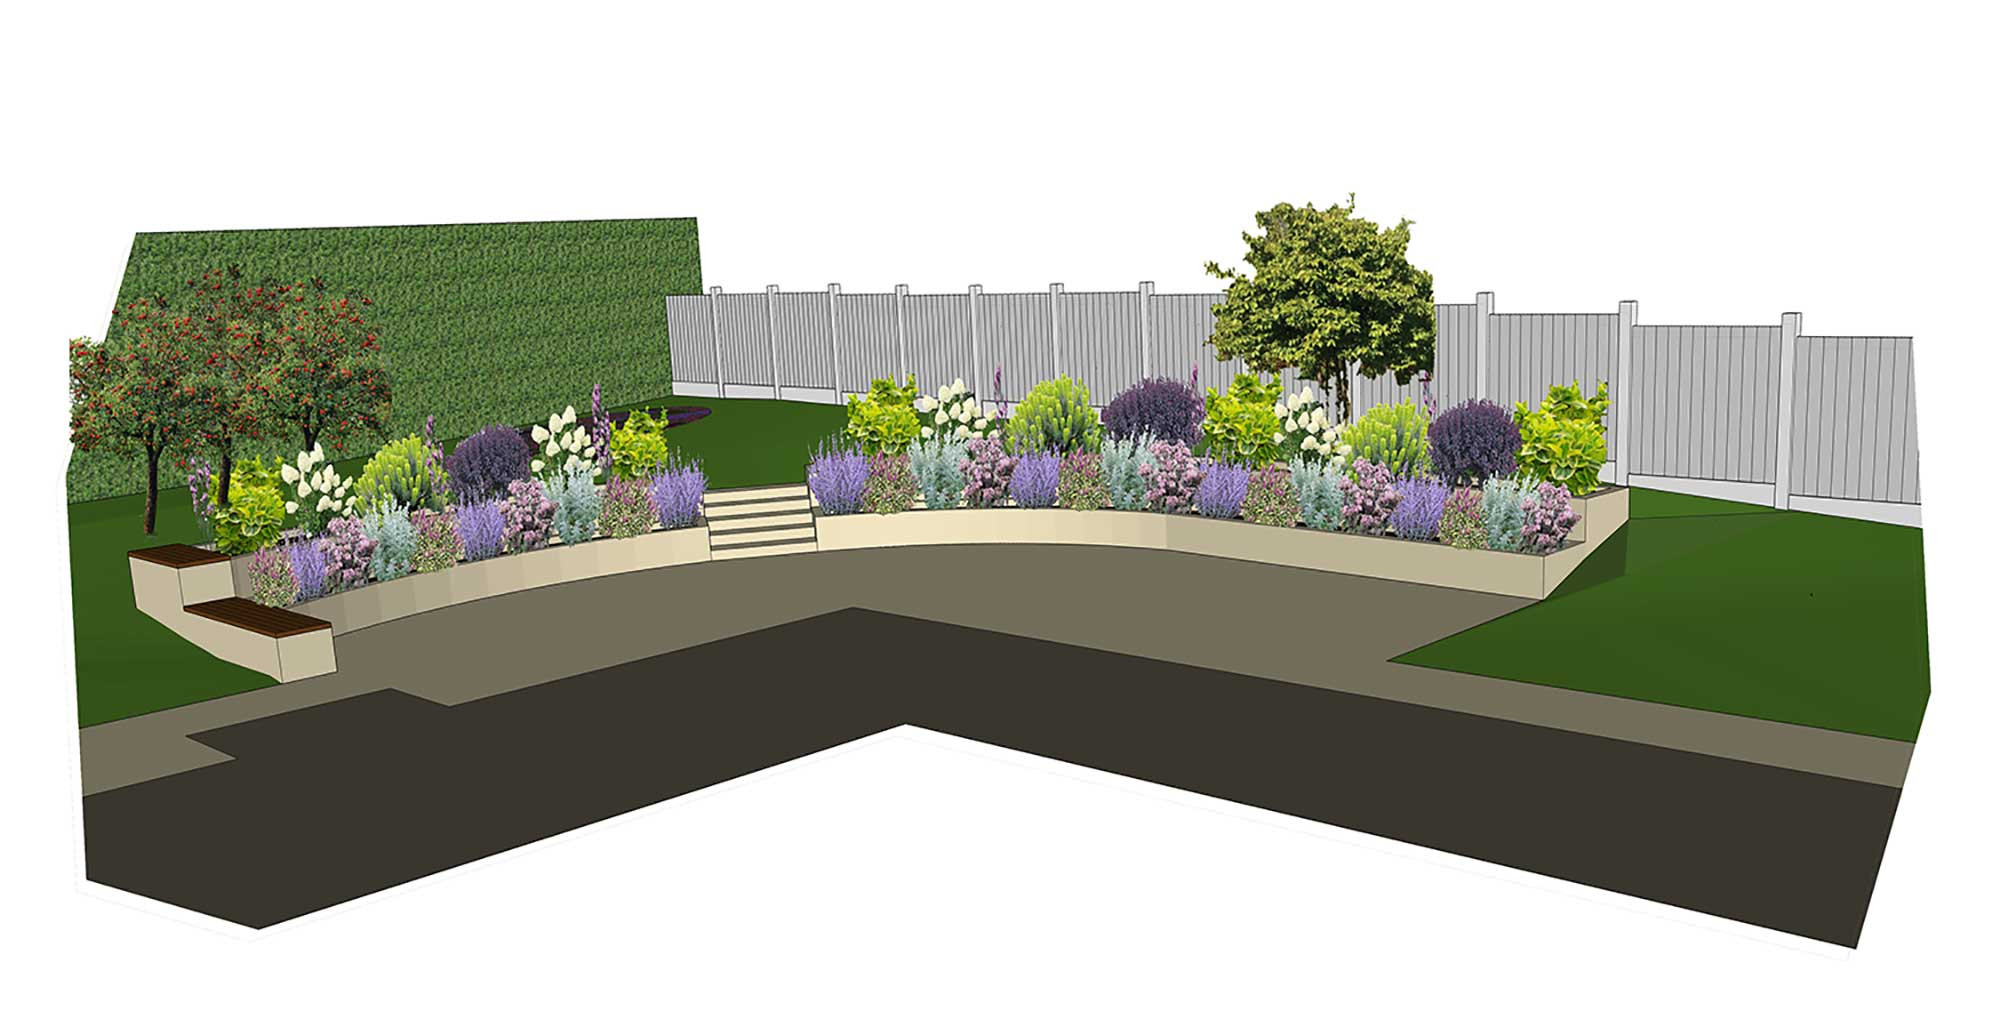 rear garden design visualisation garden design layout garden planting design ideas garden planner uk borders for gardens hornby garden designs